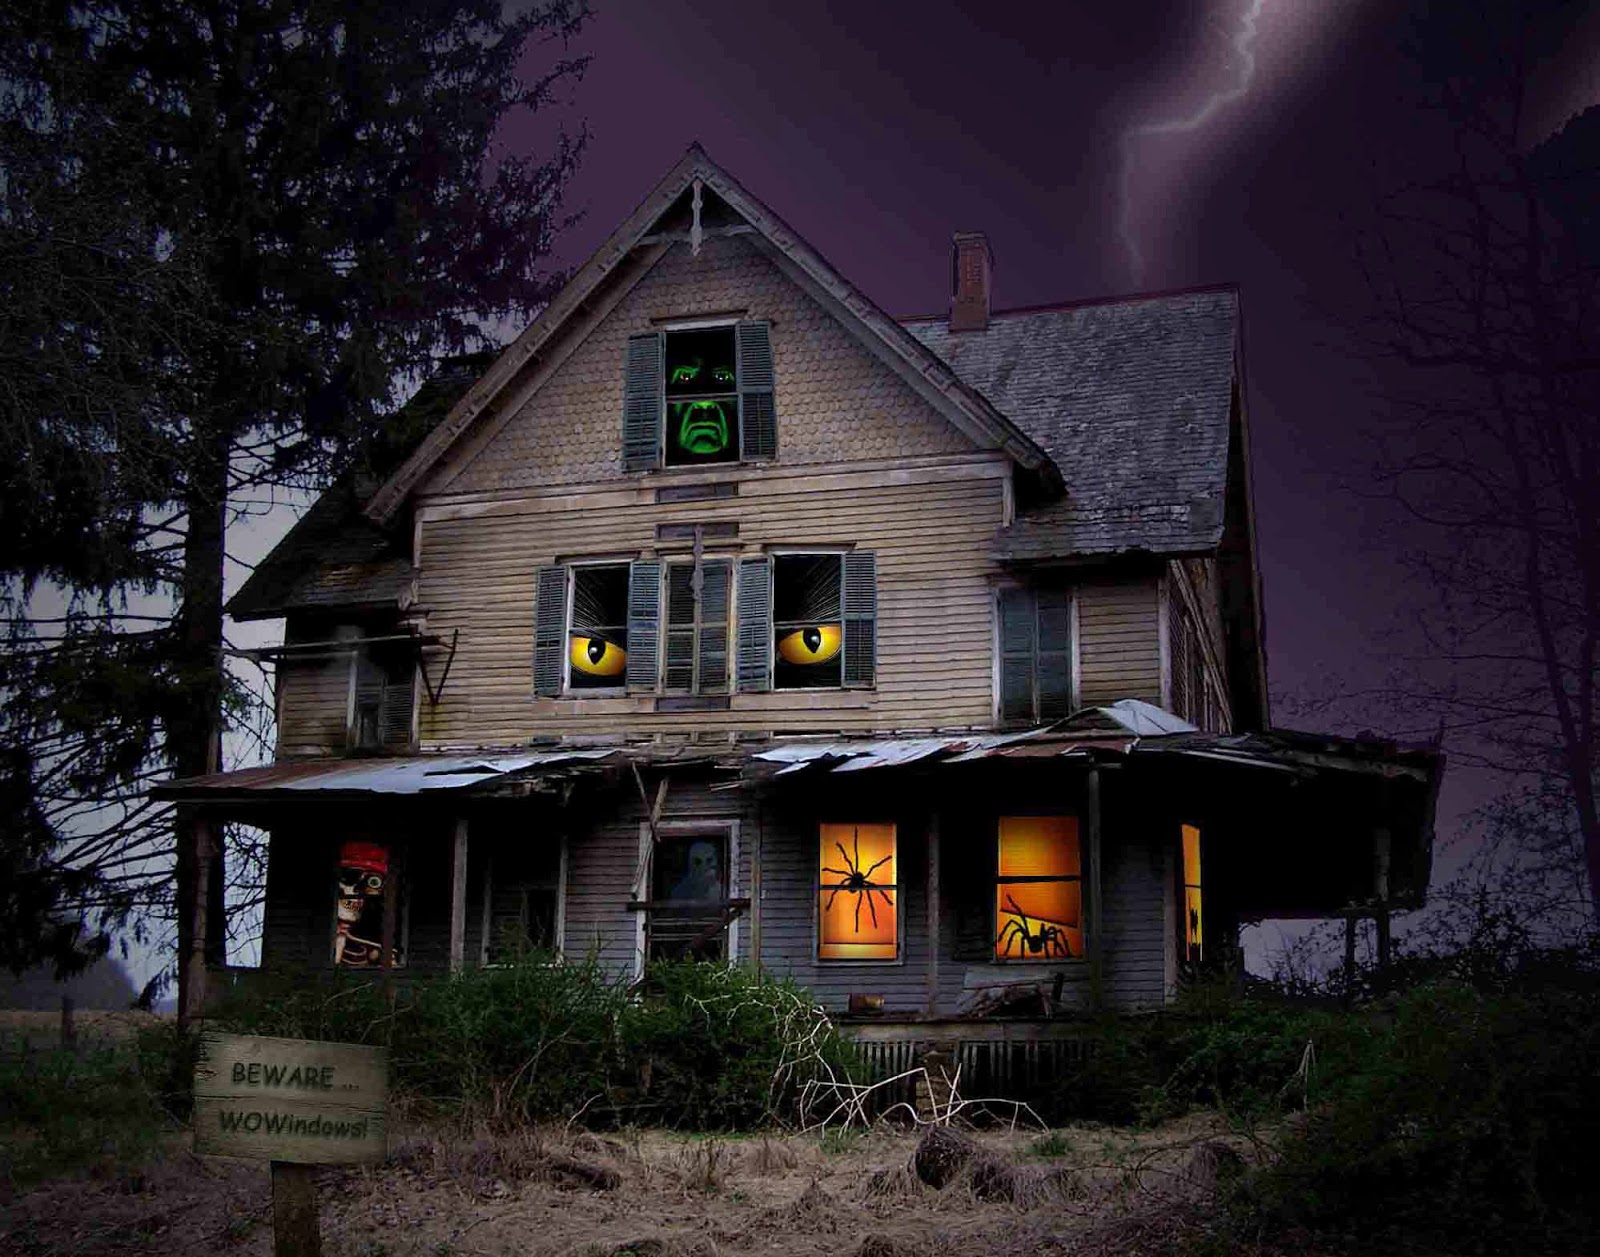 Haunted house hd wallpapers hd wallpapers pics for House pic hd